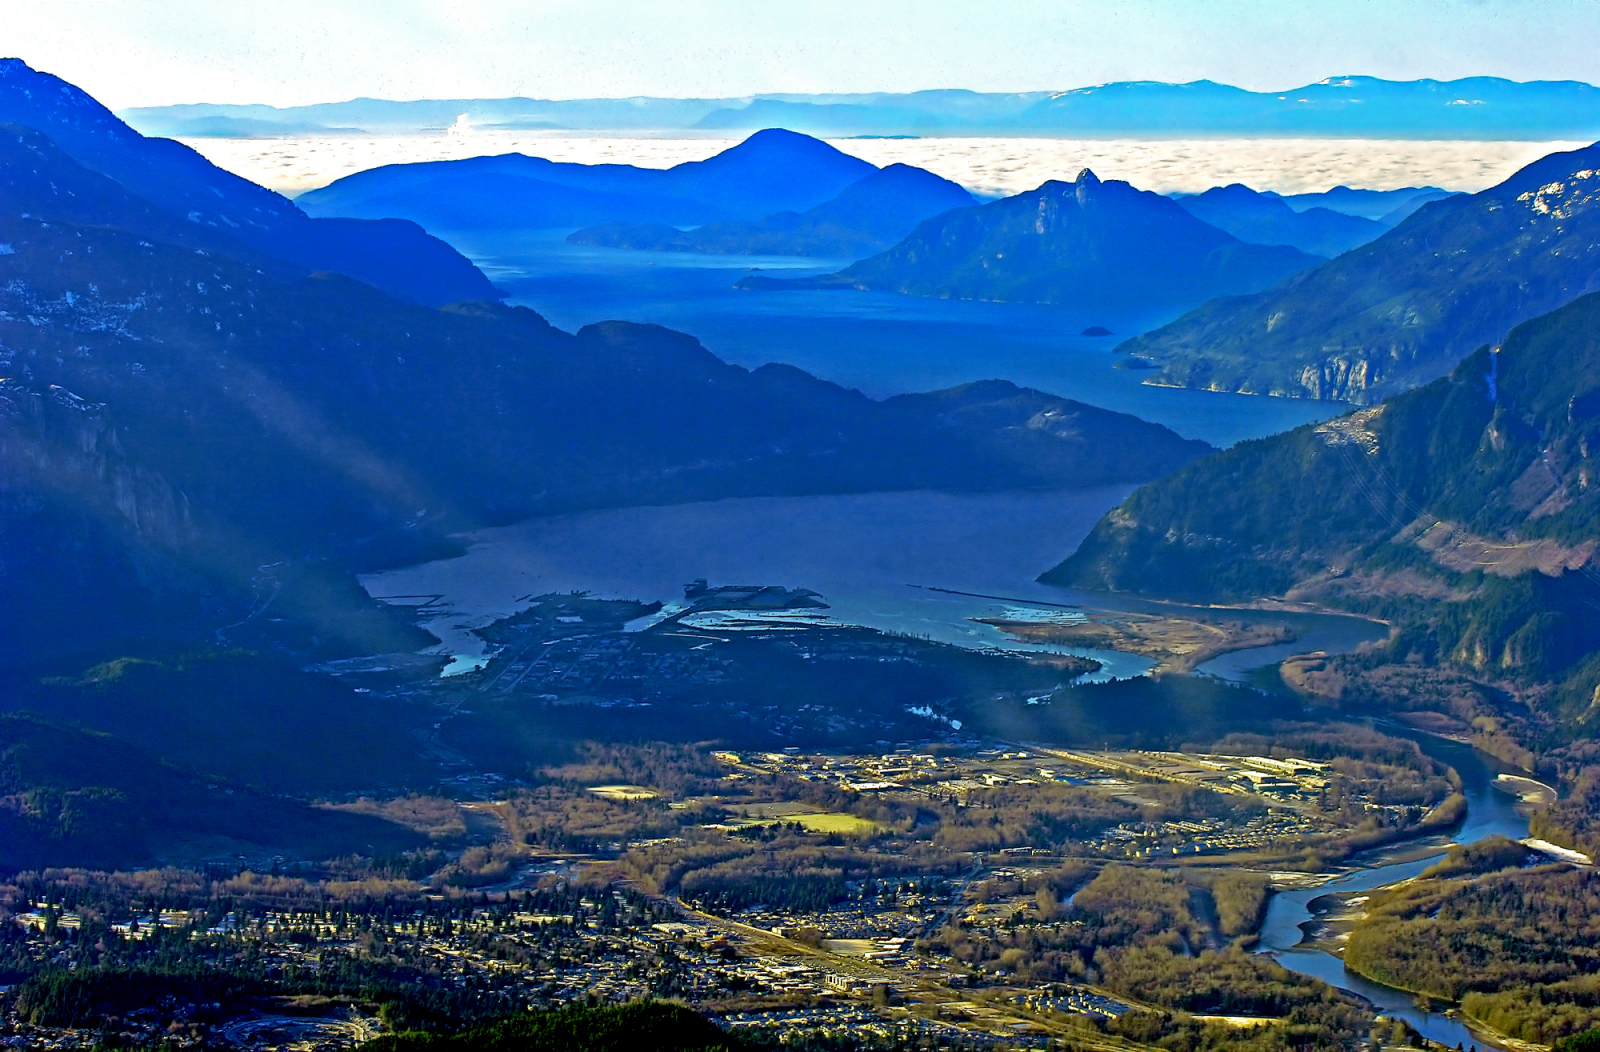 Squamish_howe_sound_LNG_fjord_estuary_Woodfibre_Tourism